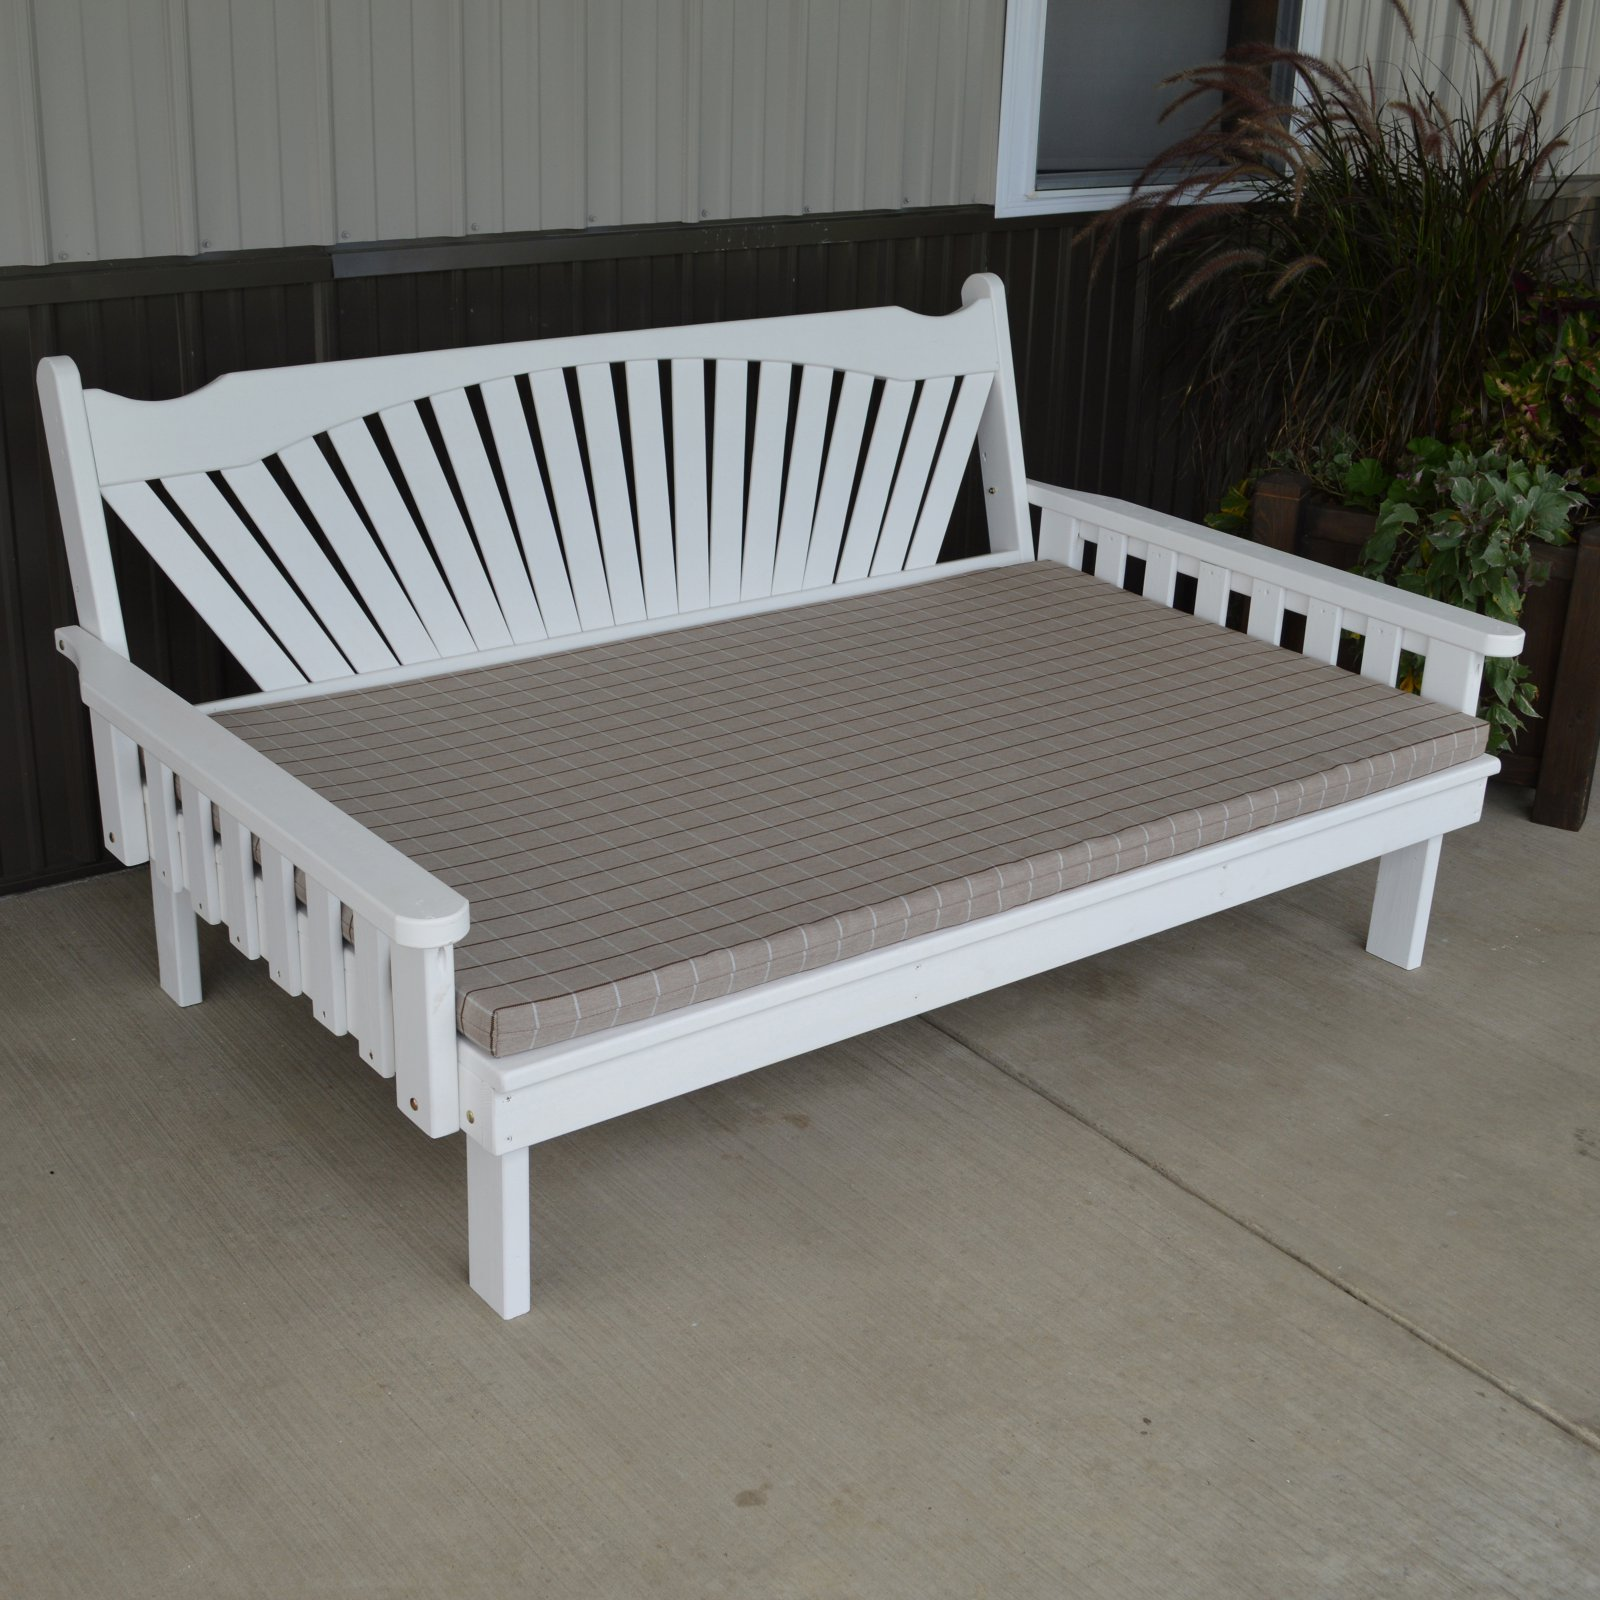 A & L Furniture Yellow Pine Fanback Daybed